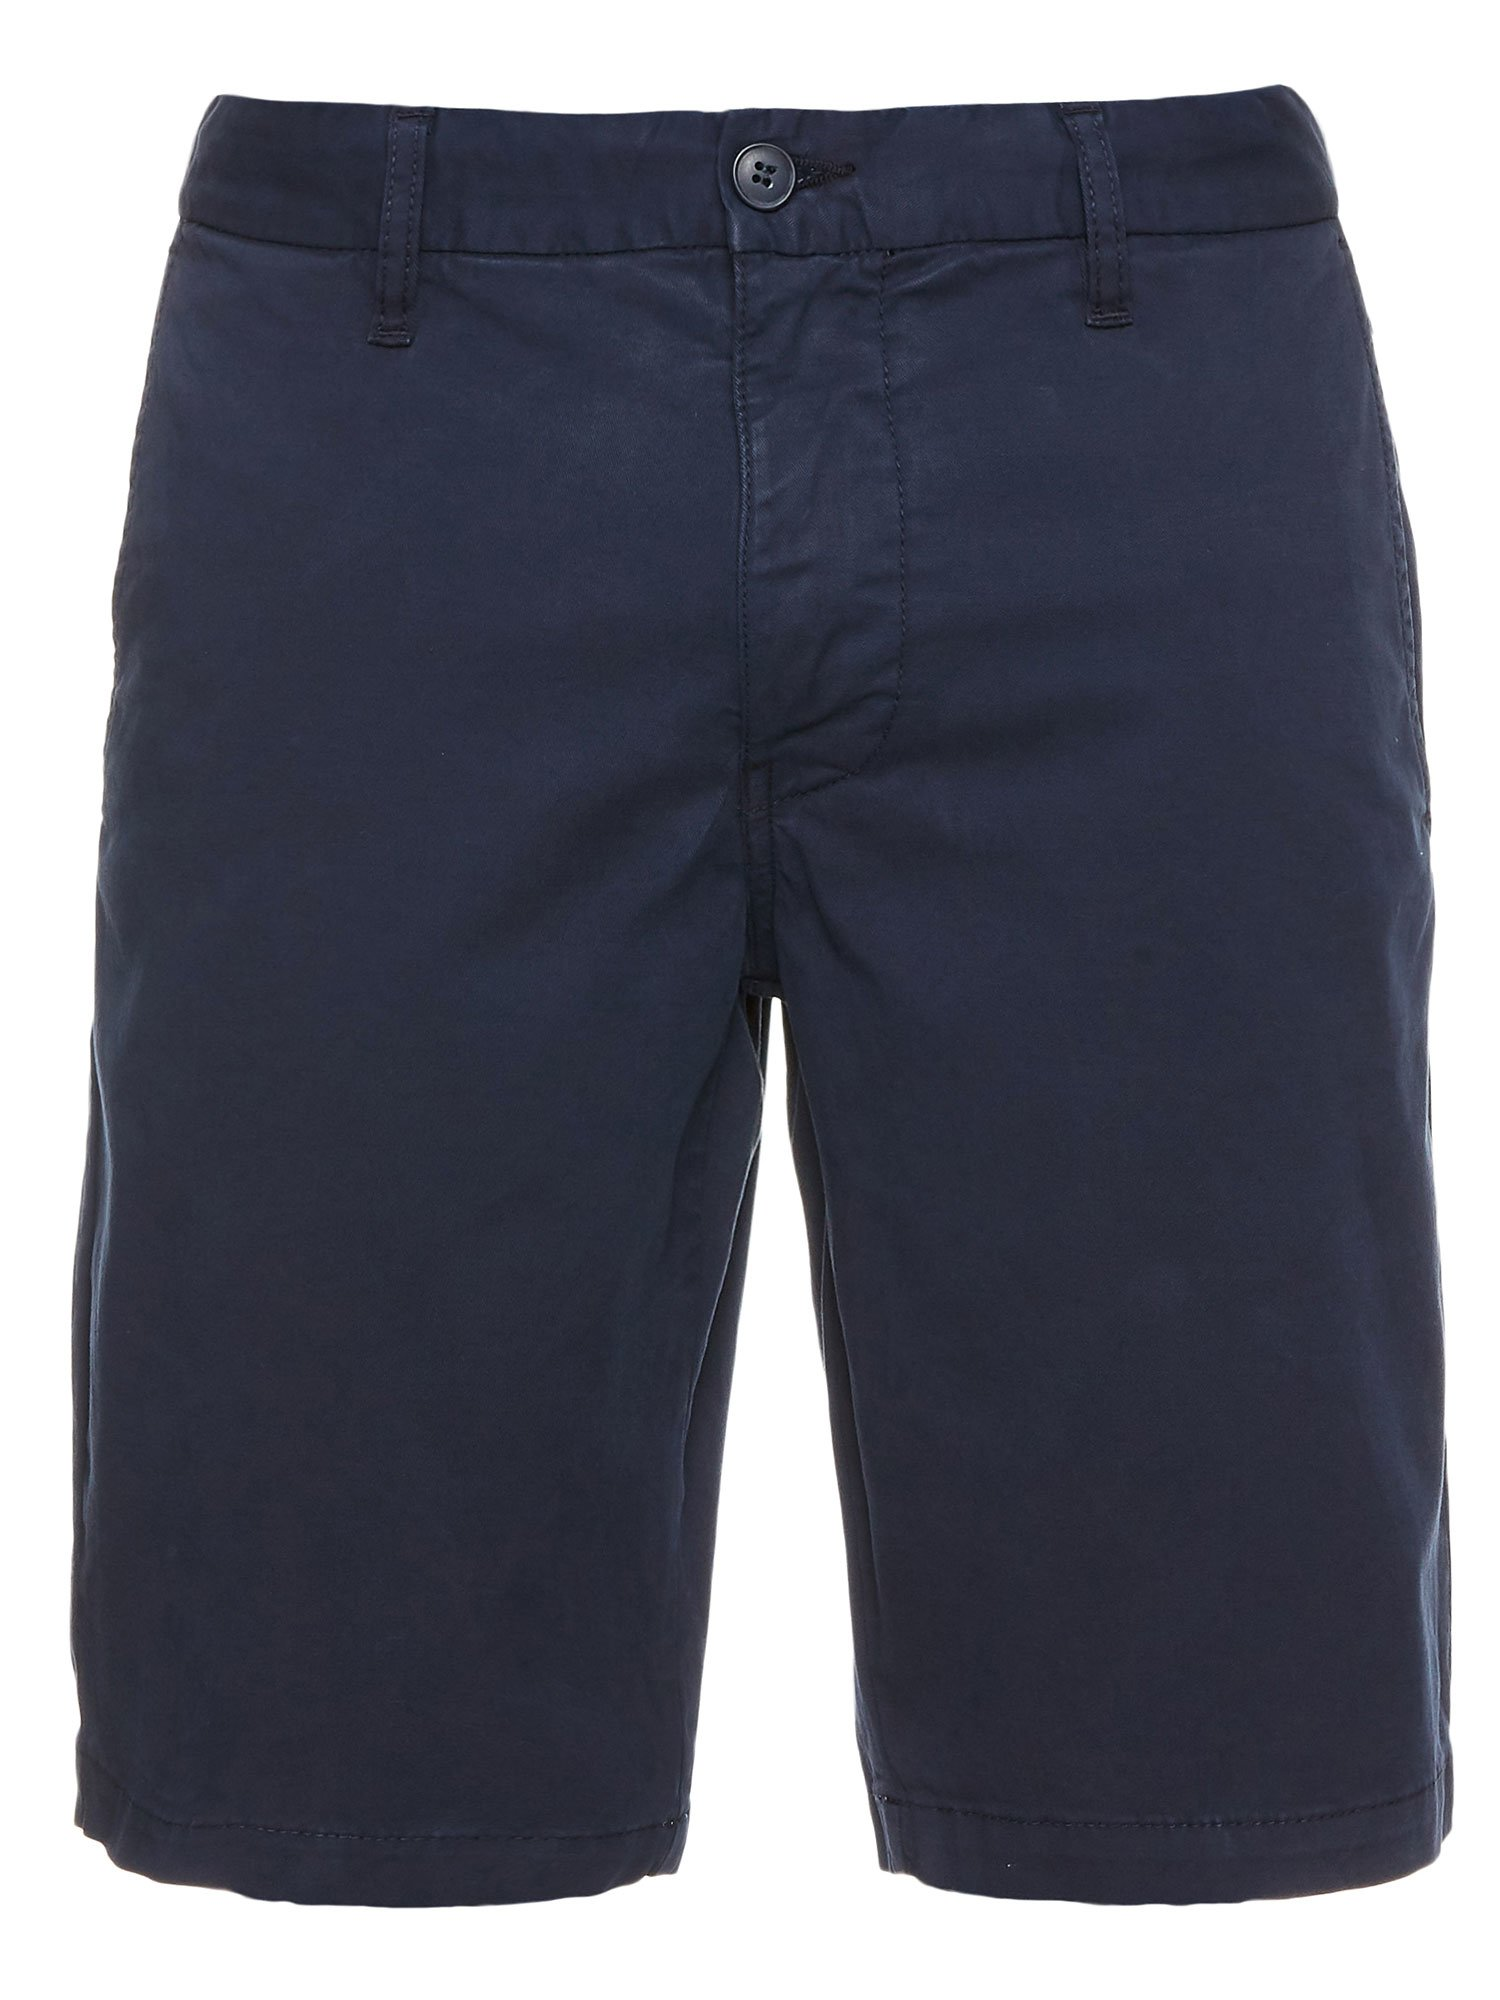 COTTON TWILL BERMUDA SHORTS - Blauer